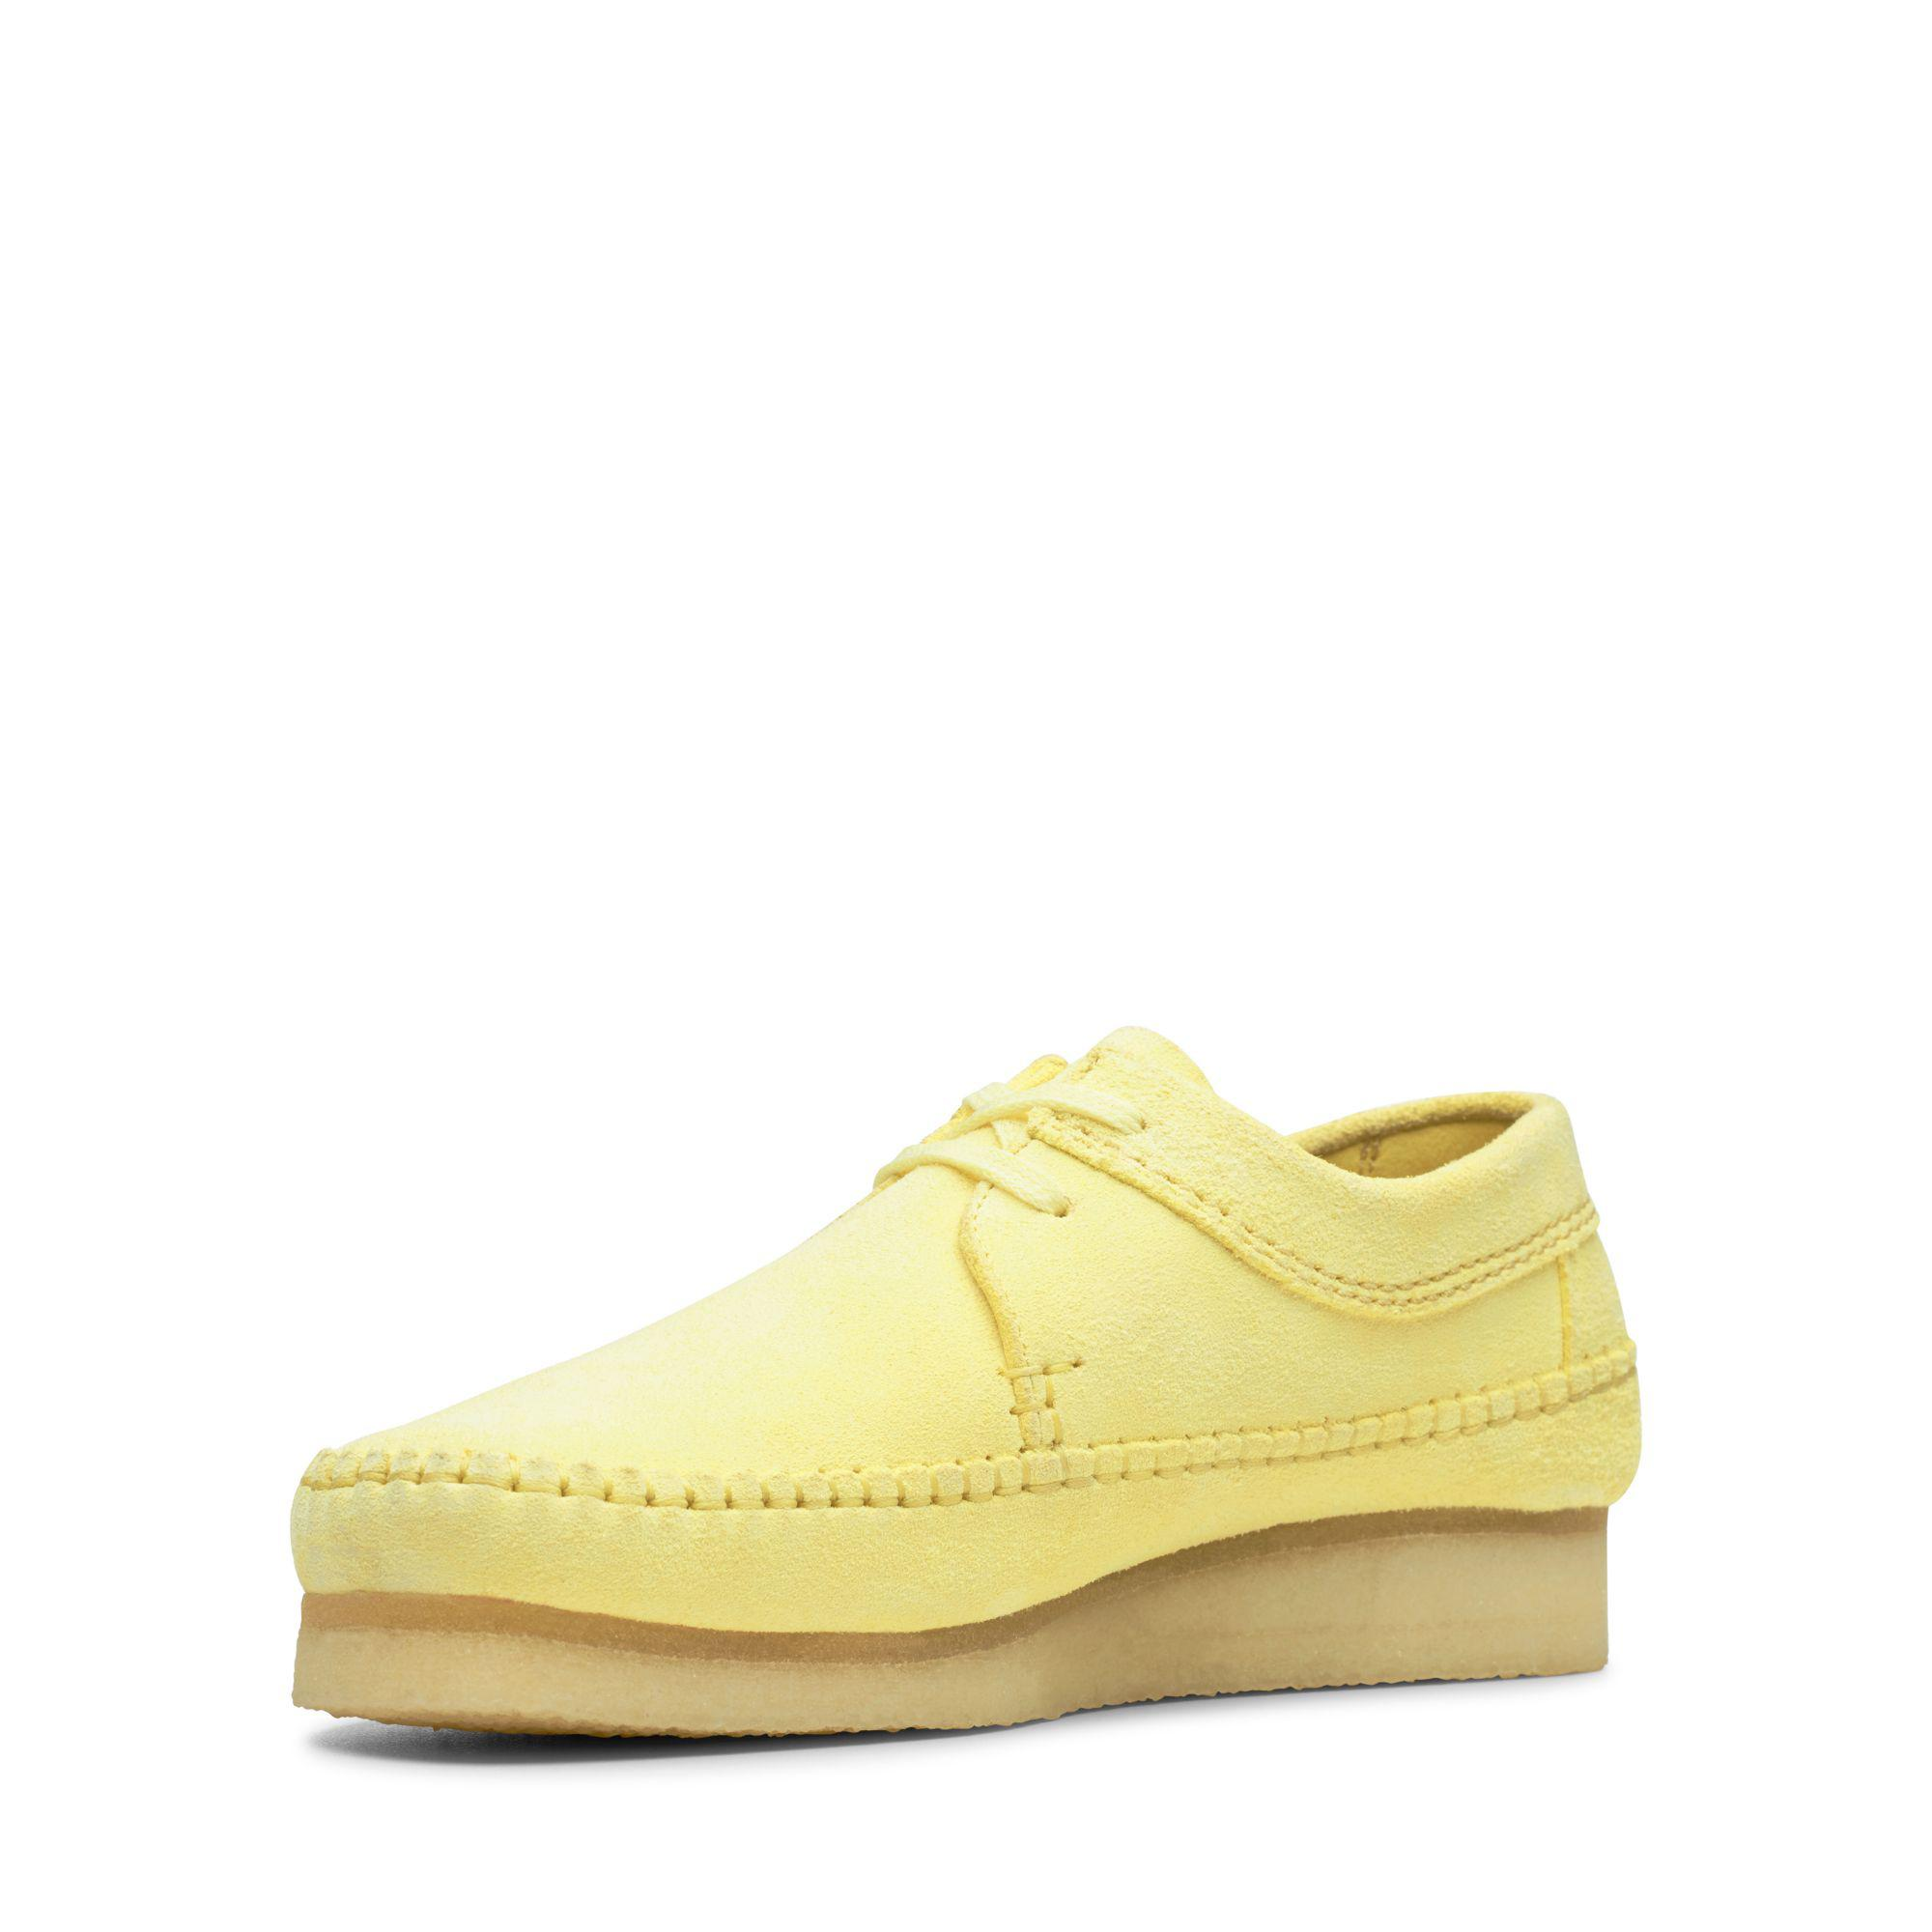 Clarks Suede Weaver in Pale Yellow